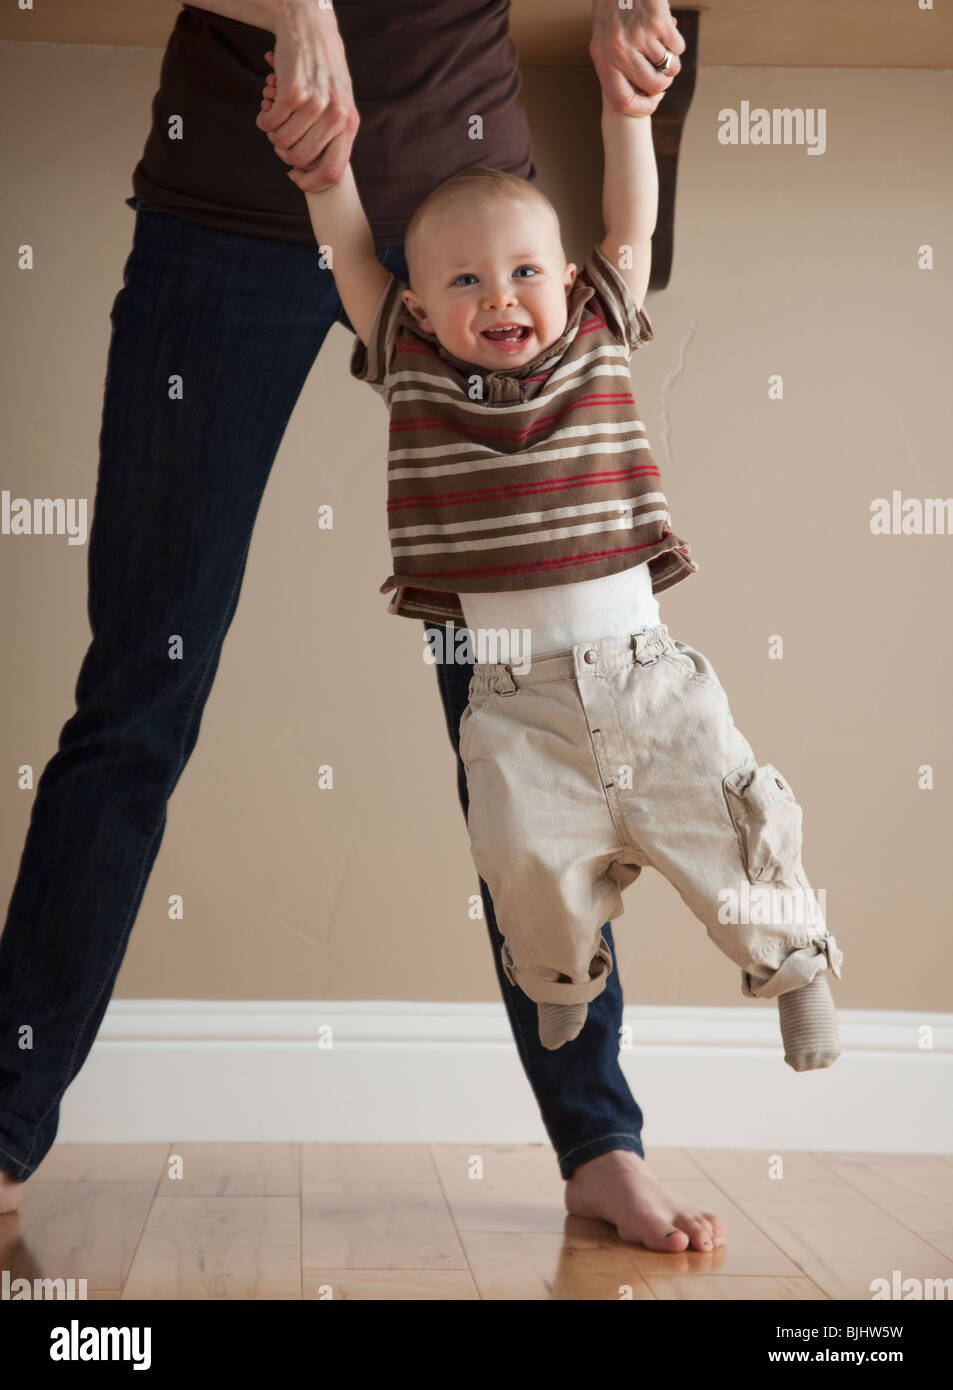 Mother swinging toddler - Stock Image